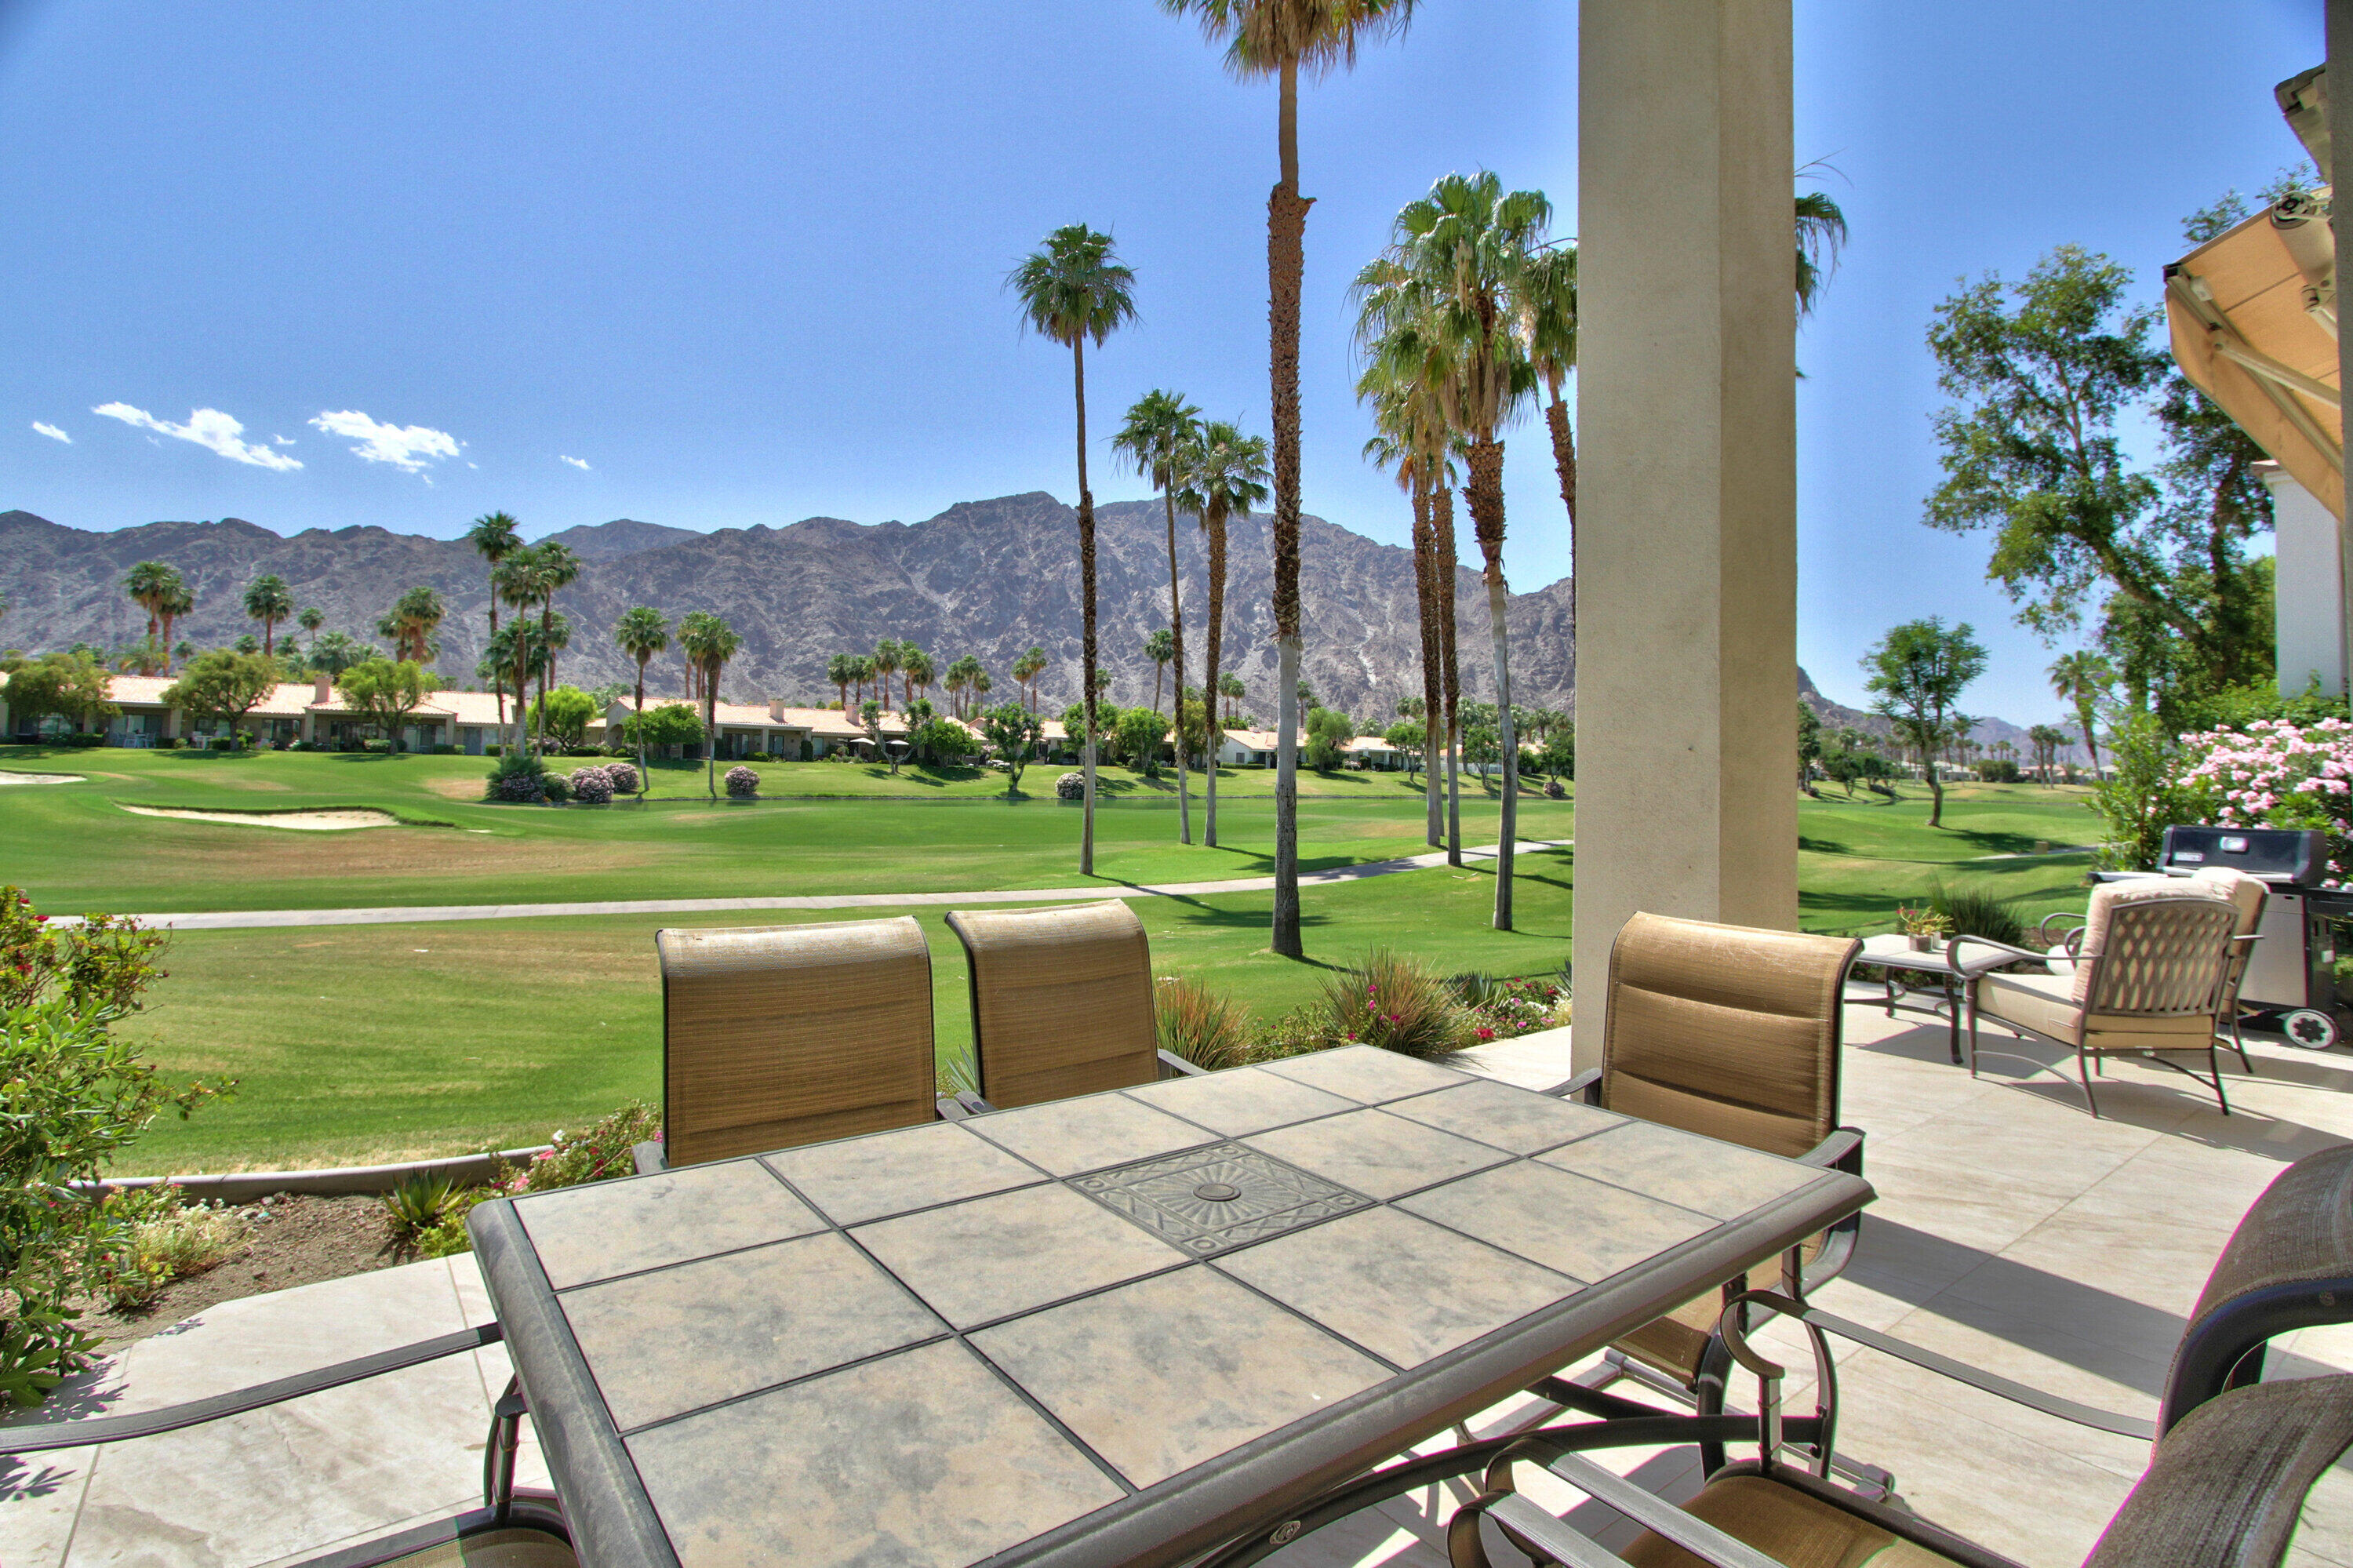 Priced to sell! Mountains mountains and more outstanding large Mountain views! This home is located on the 7th hole of the Arnold Palmer private golf course at beautiful PGA West. At night the mountains are lit up and the sunsets here are absolutely spectacular. The back patio has been extended for additional outdoor enjoyment. The home has been remodeled extensively and no expense spared to include new bathrooms, new ceiling fans, new LED lighting, fresh paint throughout entire interior, new cabinets, new flooring, new televisions and new furniture.Furnished per inventory list. This is a must see home. Community pools and spas within walking distance. Call now for a private showing.